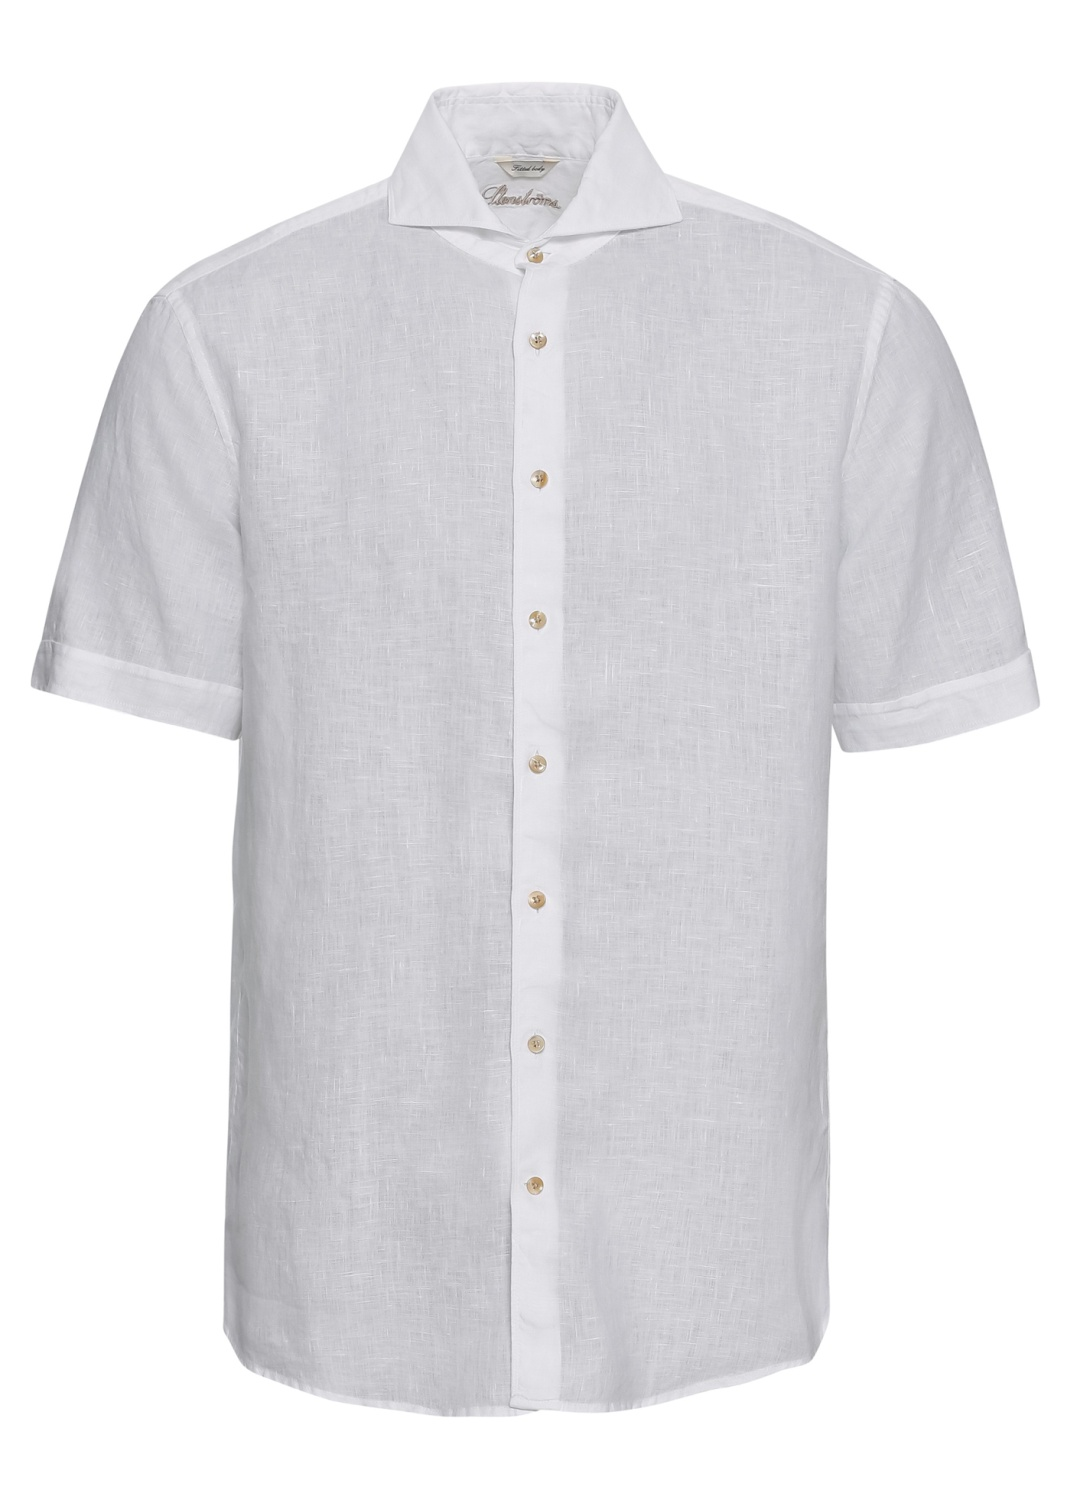 Fitted Body/22, Short sleeve,SPORT image number 0